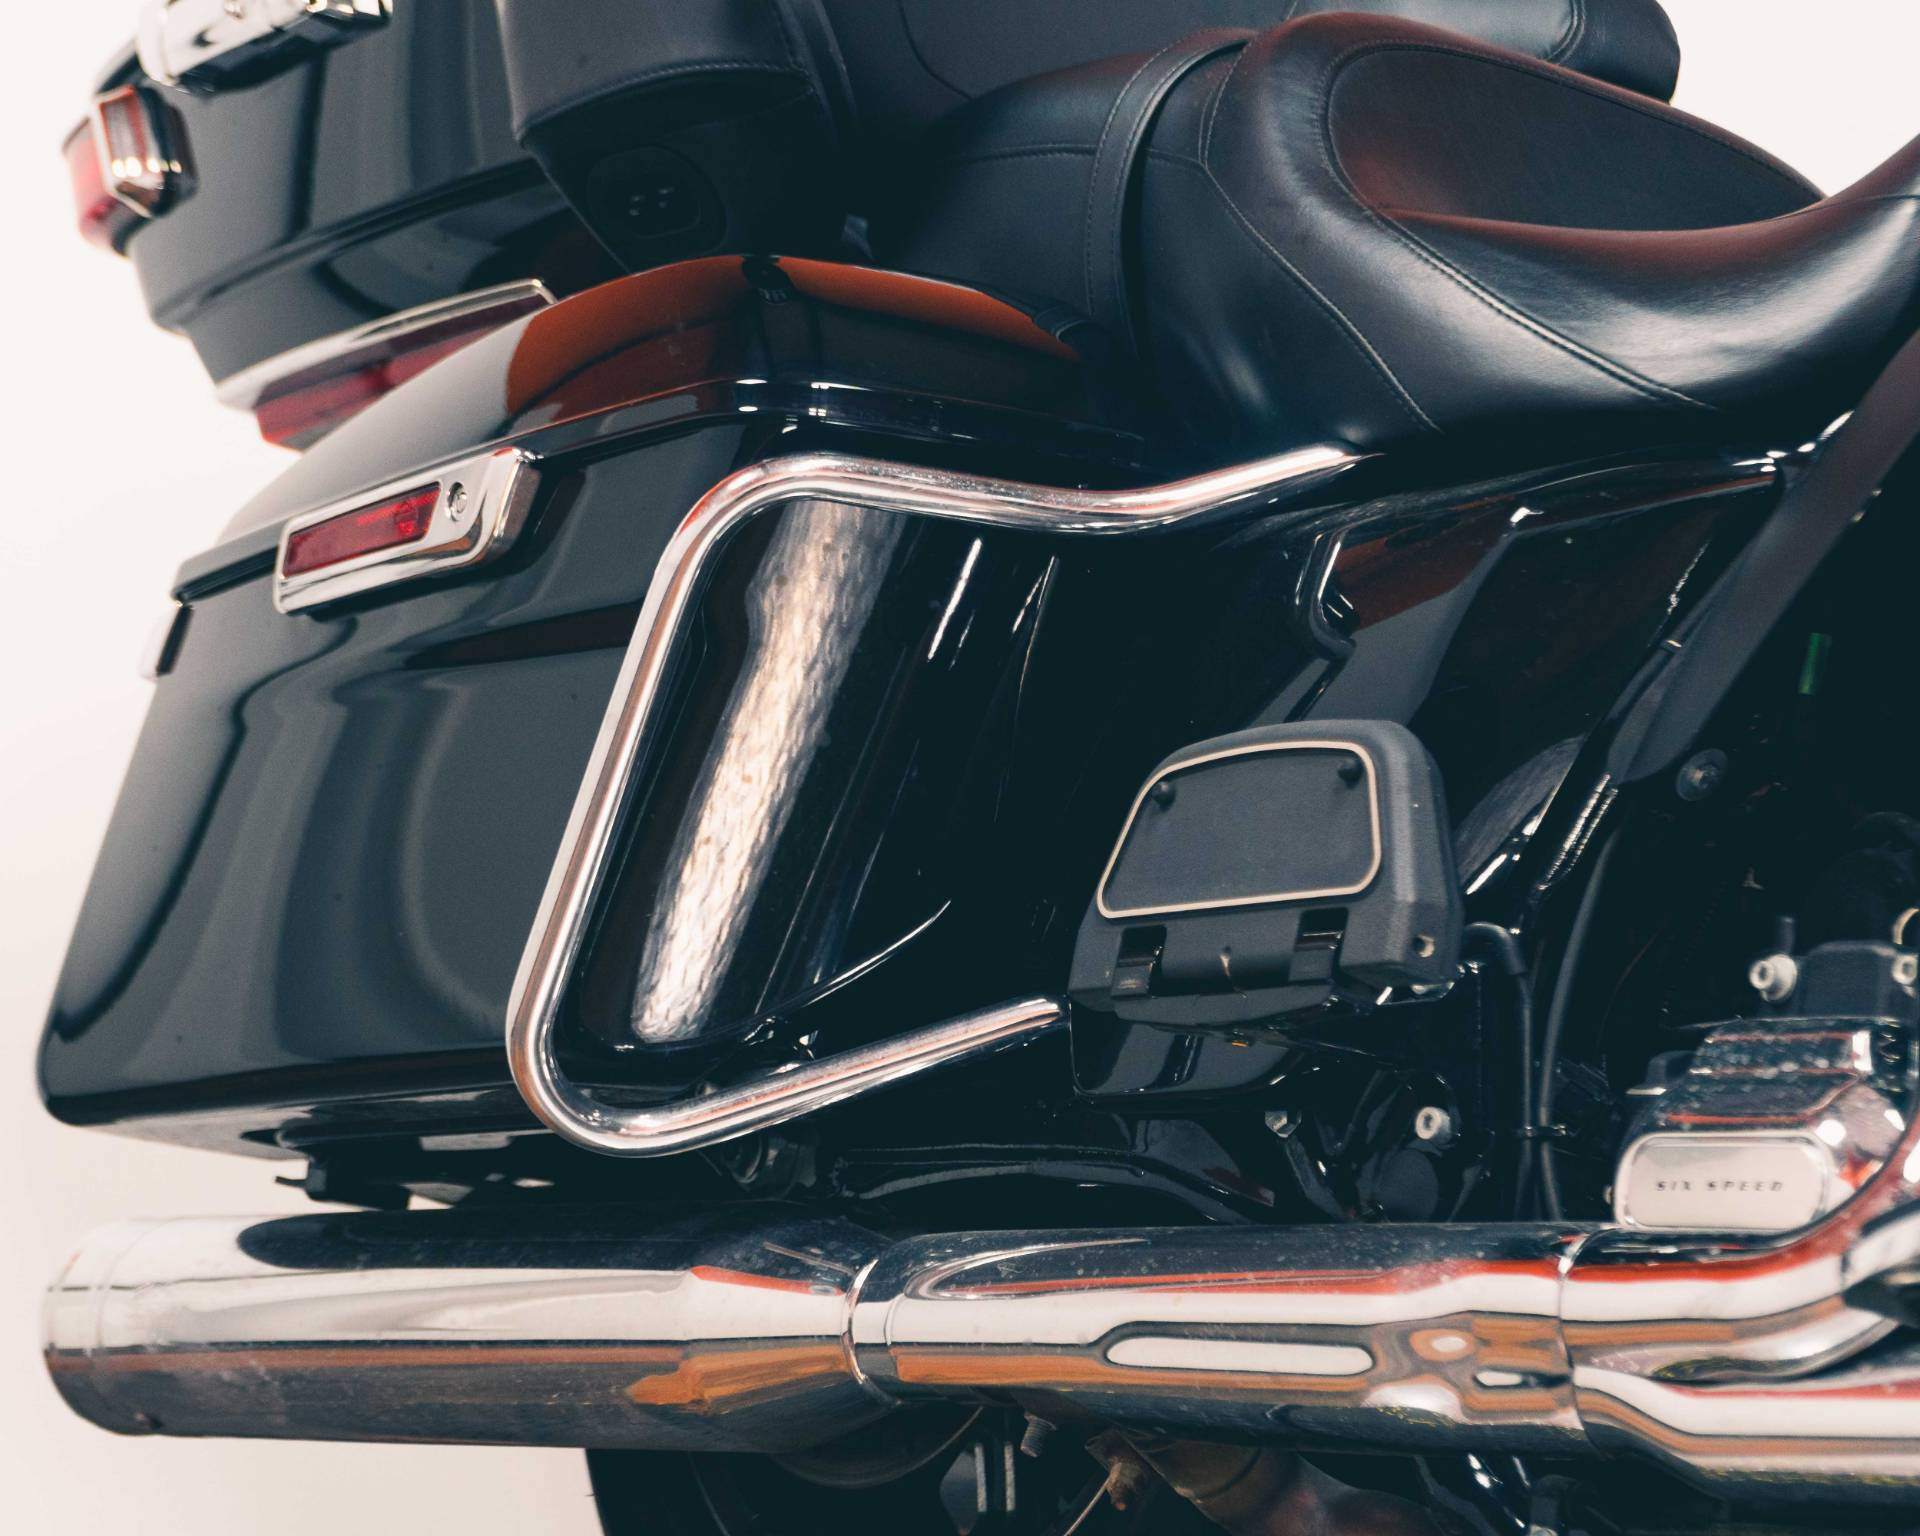 2012 Harley-Davidson Electra Glide® Ultra Limited in Marion, Illinois - Photo 6